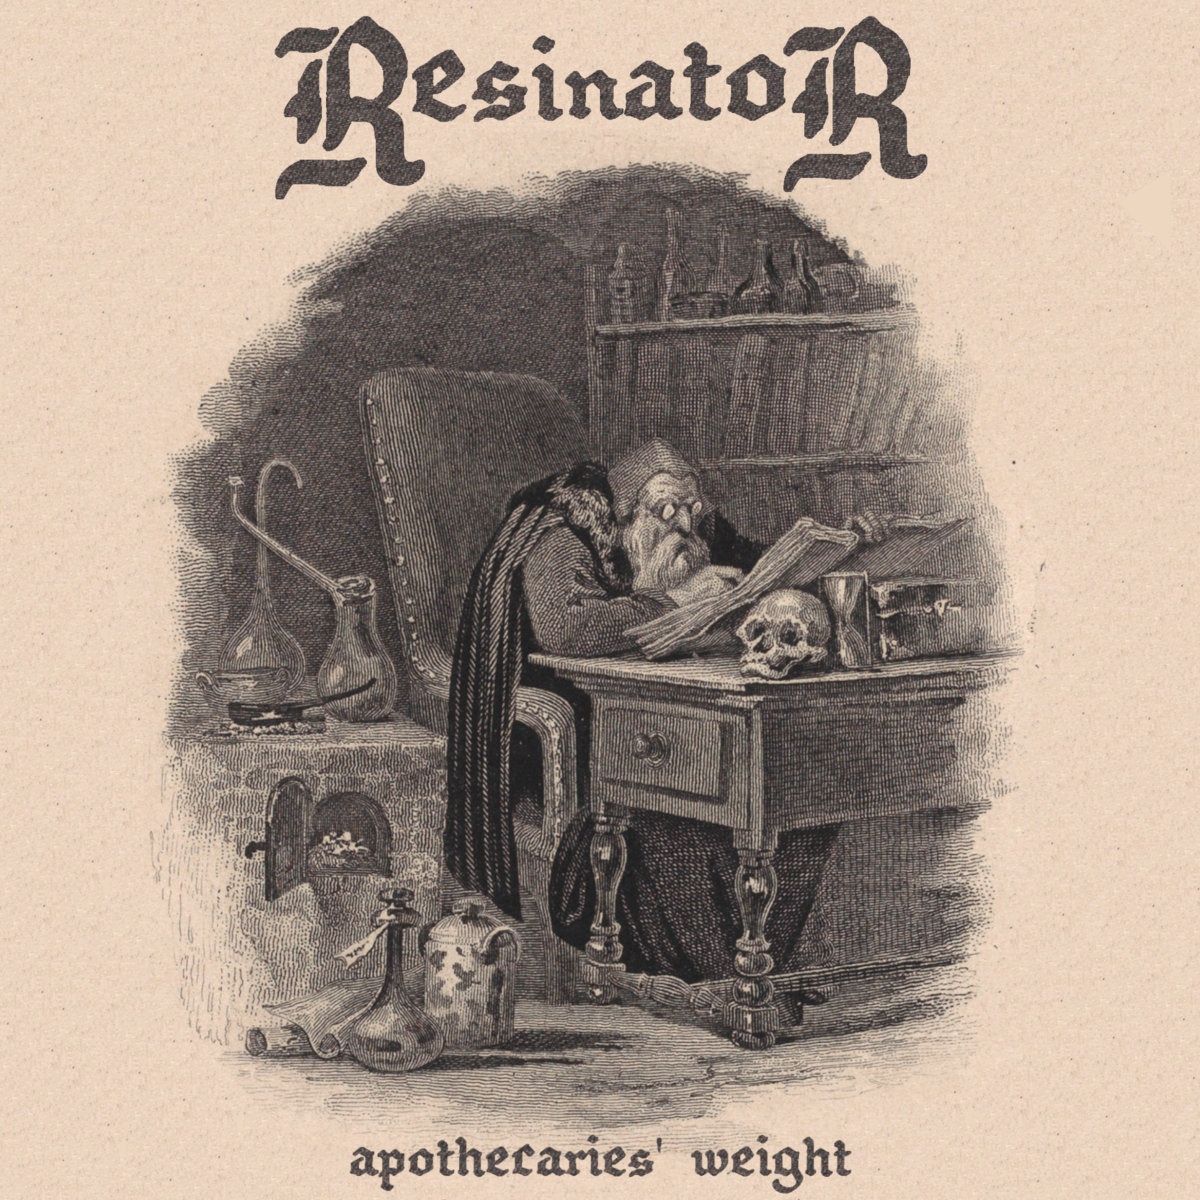 Apothecaries' Weight